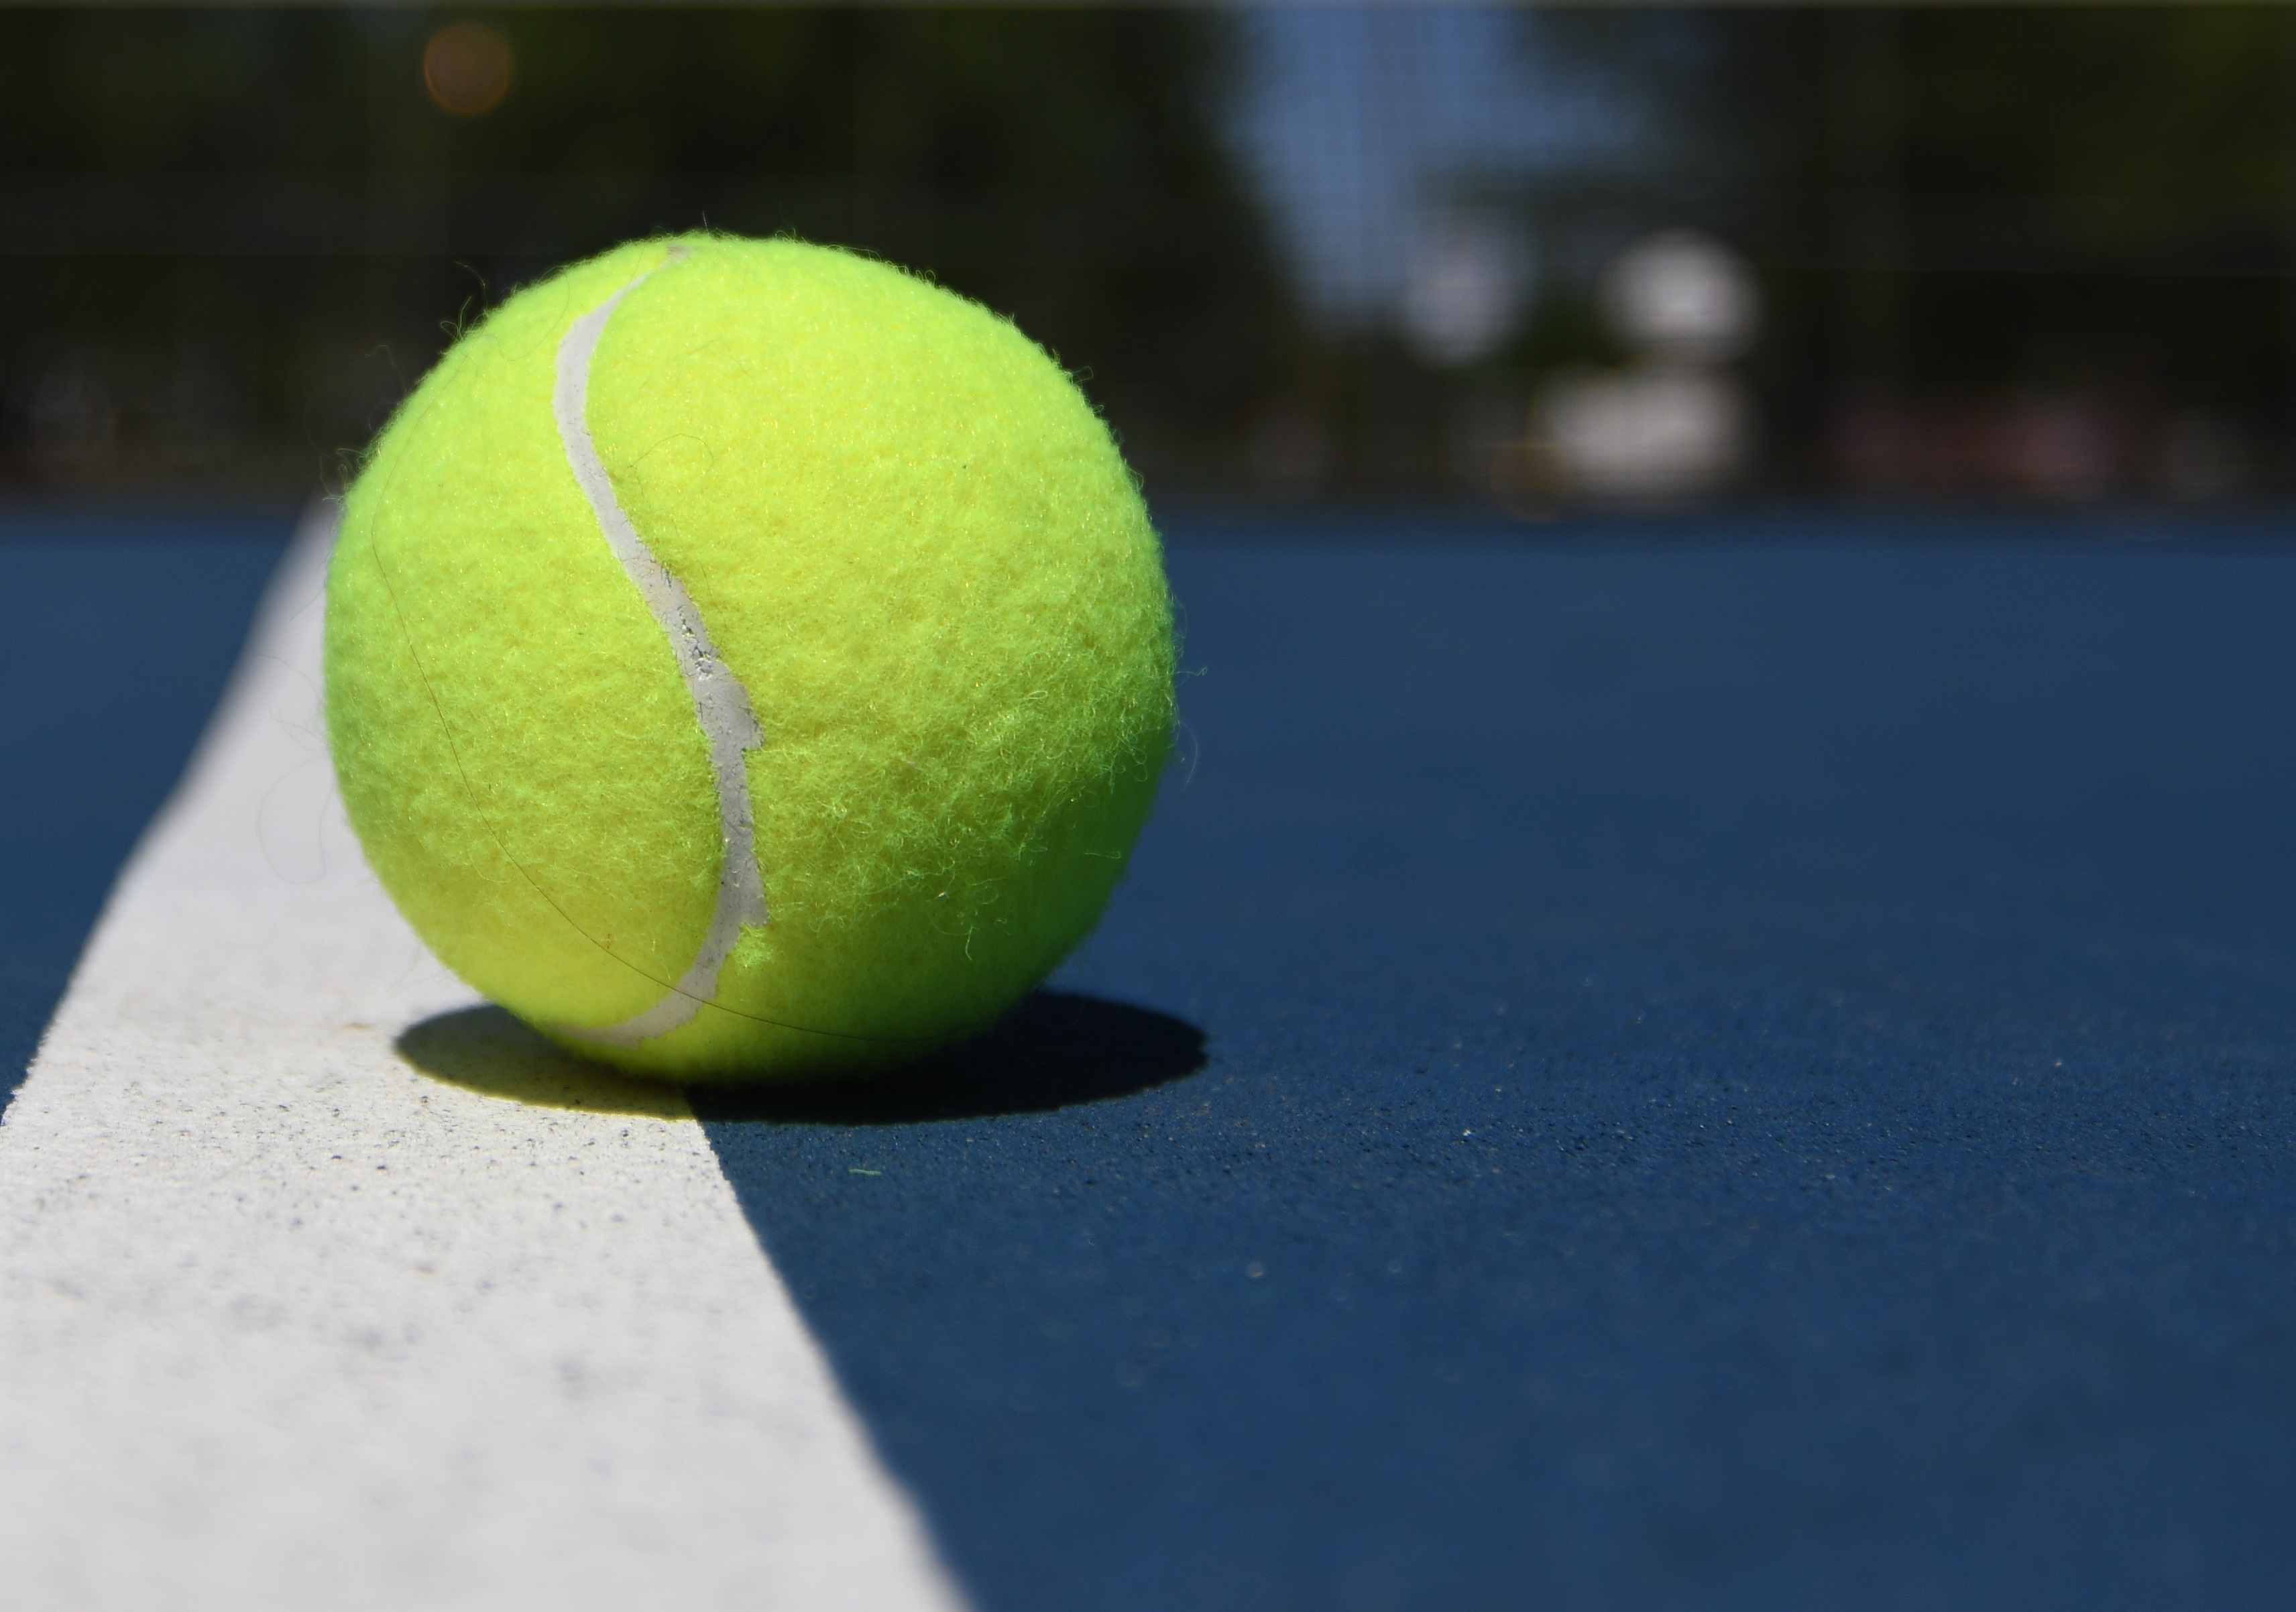 New Tennis App Will Detect When Ball Is Out Of Bounds Clay And Milk